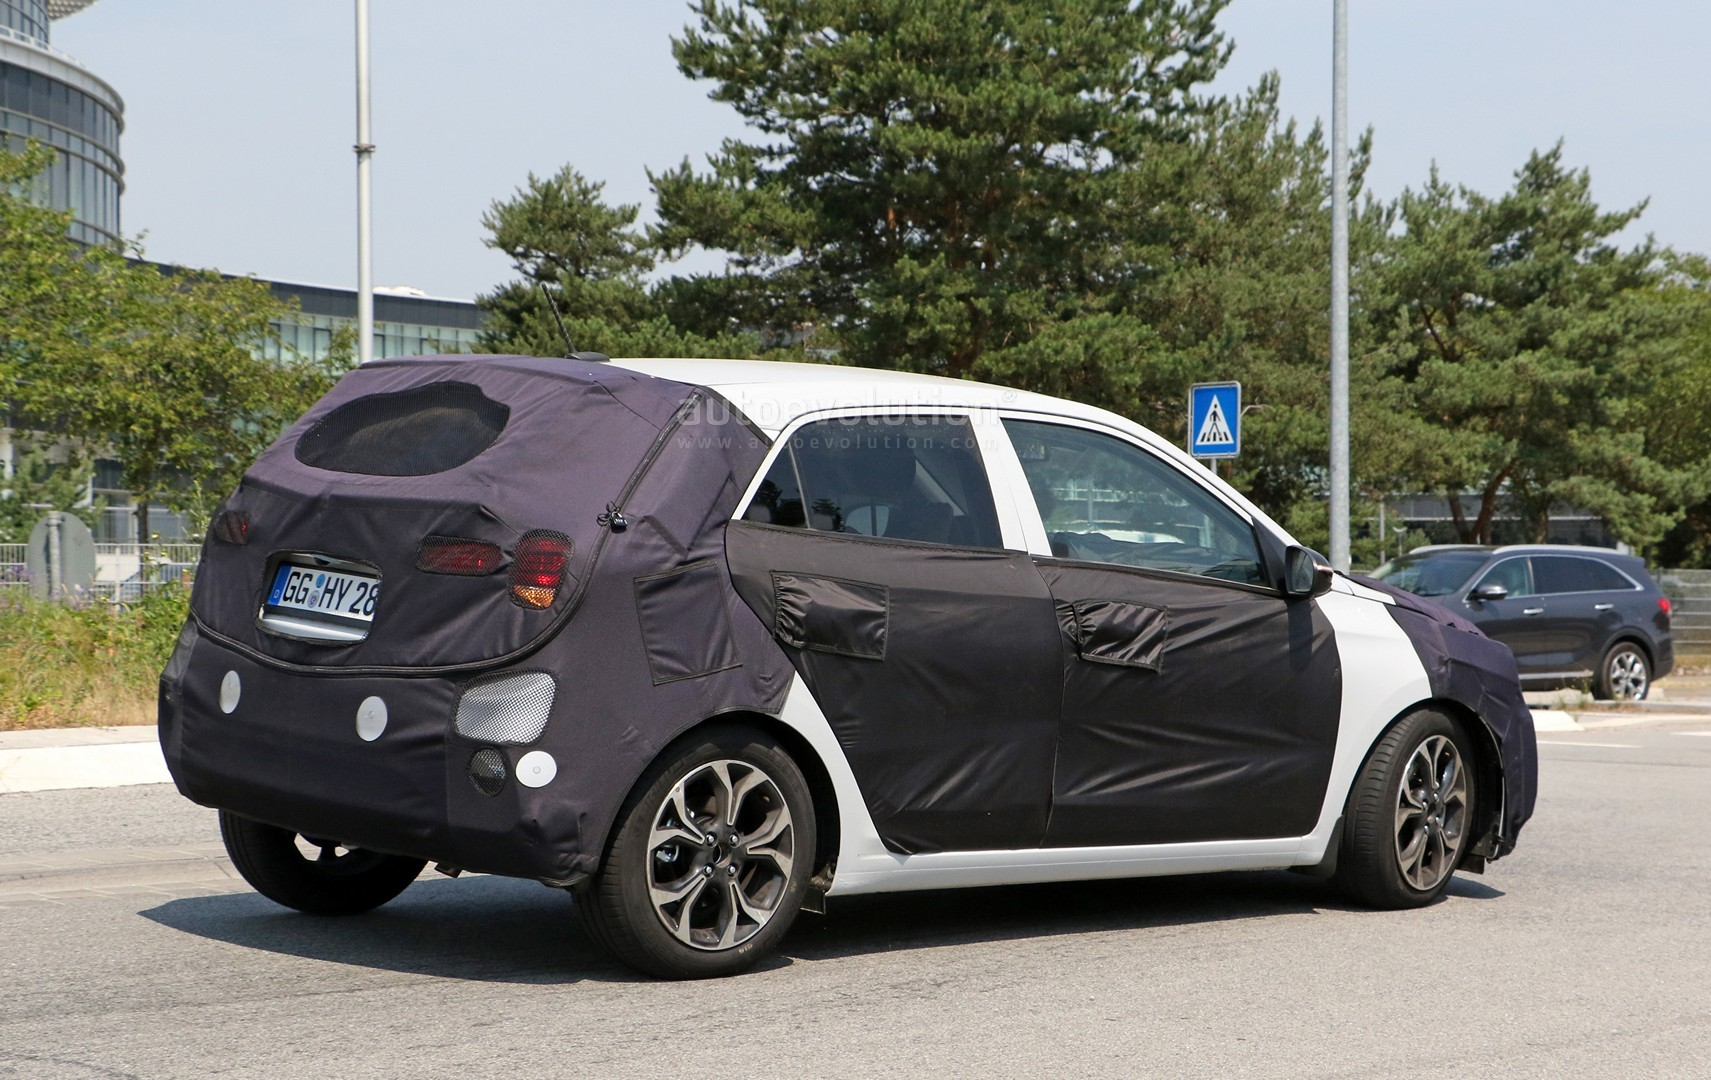 spyshots 2018 hyundai i20 facelift looks set to adopt family grille autoevolution. Black Bedroom Furniture Sets. Home Design Ideas